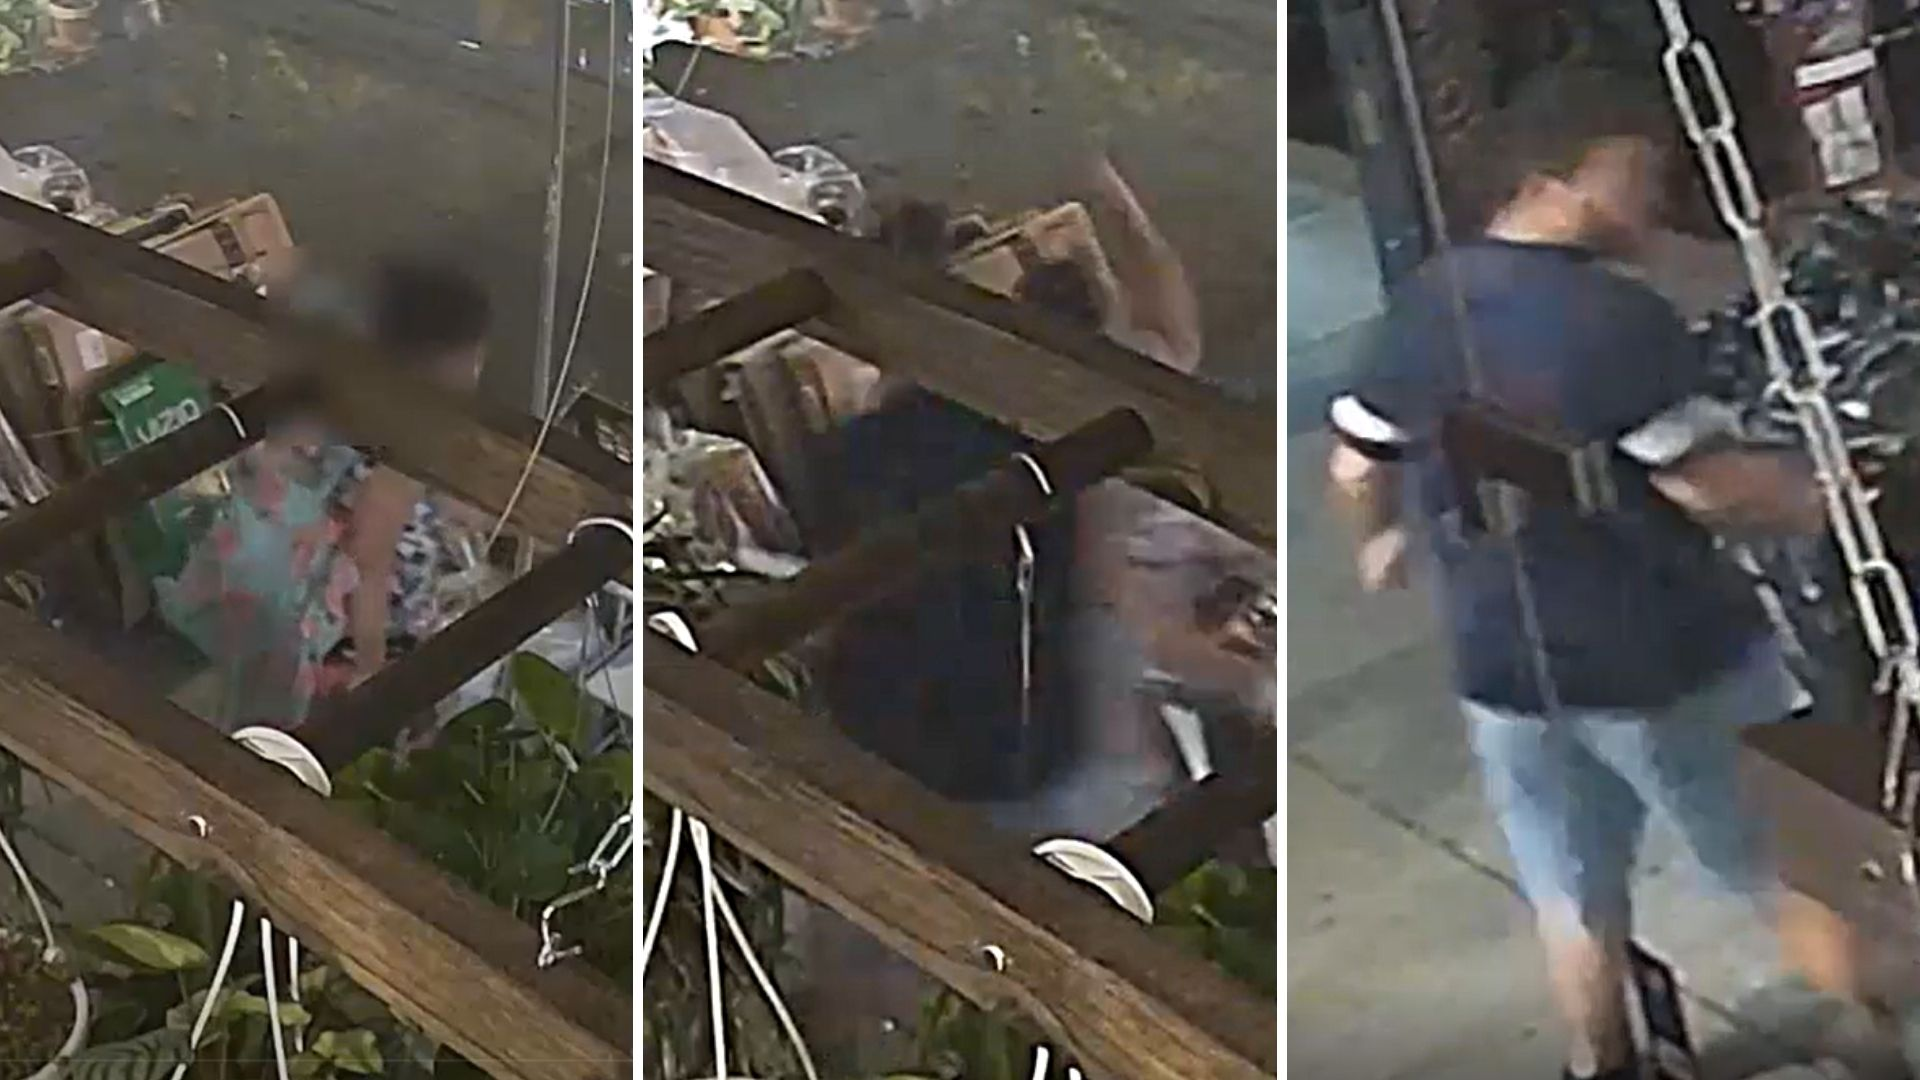 Man punches Asian woman in face on Lower East Side